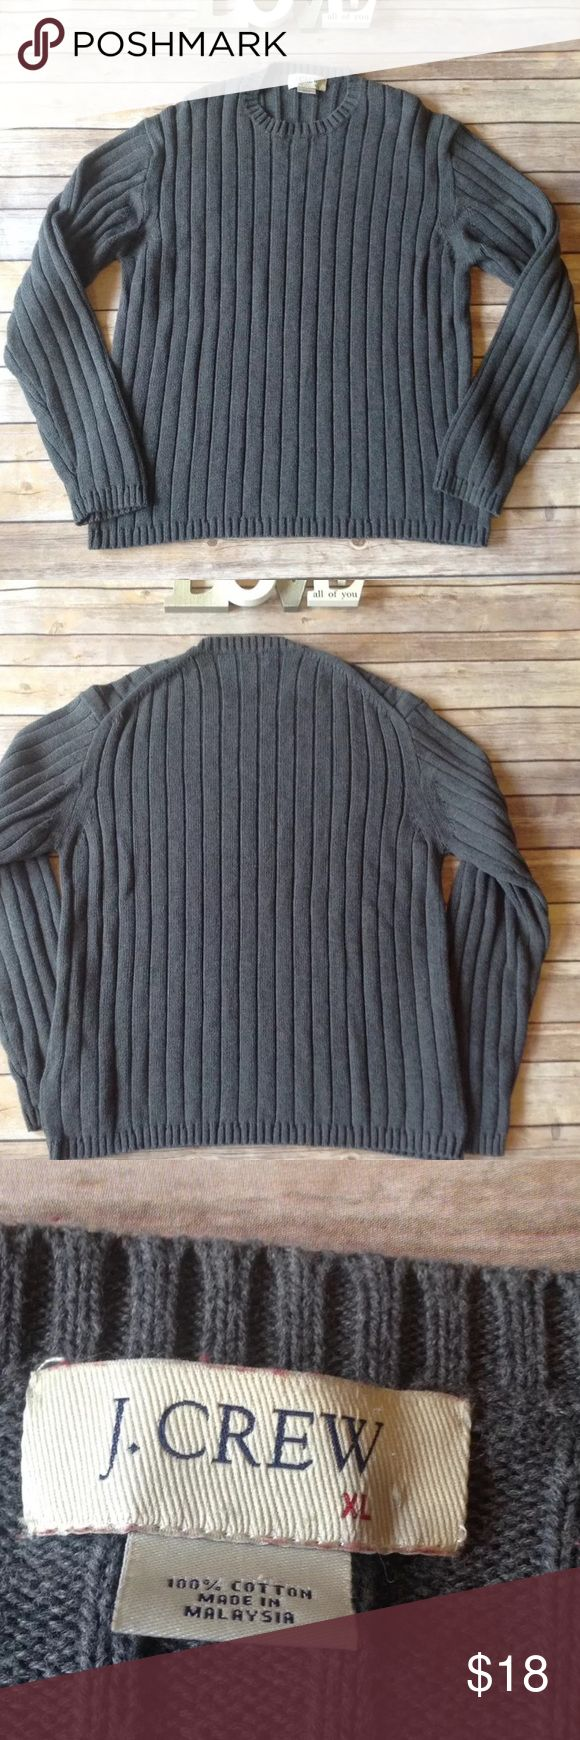 """J Crew men's gray ribbed sweater size XL Pre-owned J Crew men's gray ribbed sweater size XL. Very good used condition. No rips holes or stains. 100% cotton.   Measurements:  Armpit to armpit- 21 1/2""""  Armpit to sleeve- 19""""  Length- 27""""   I ship fast! Pay before 4:30pm Monday thru Friday and I will ship the same day!  Thank you for looking!  Check out my other items! J. Crew Sweaters Crewneck"""